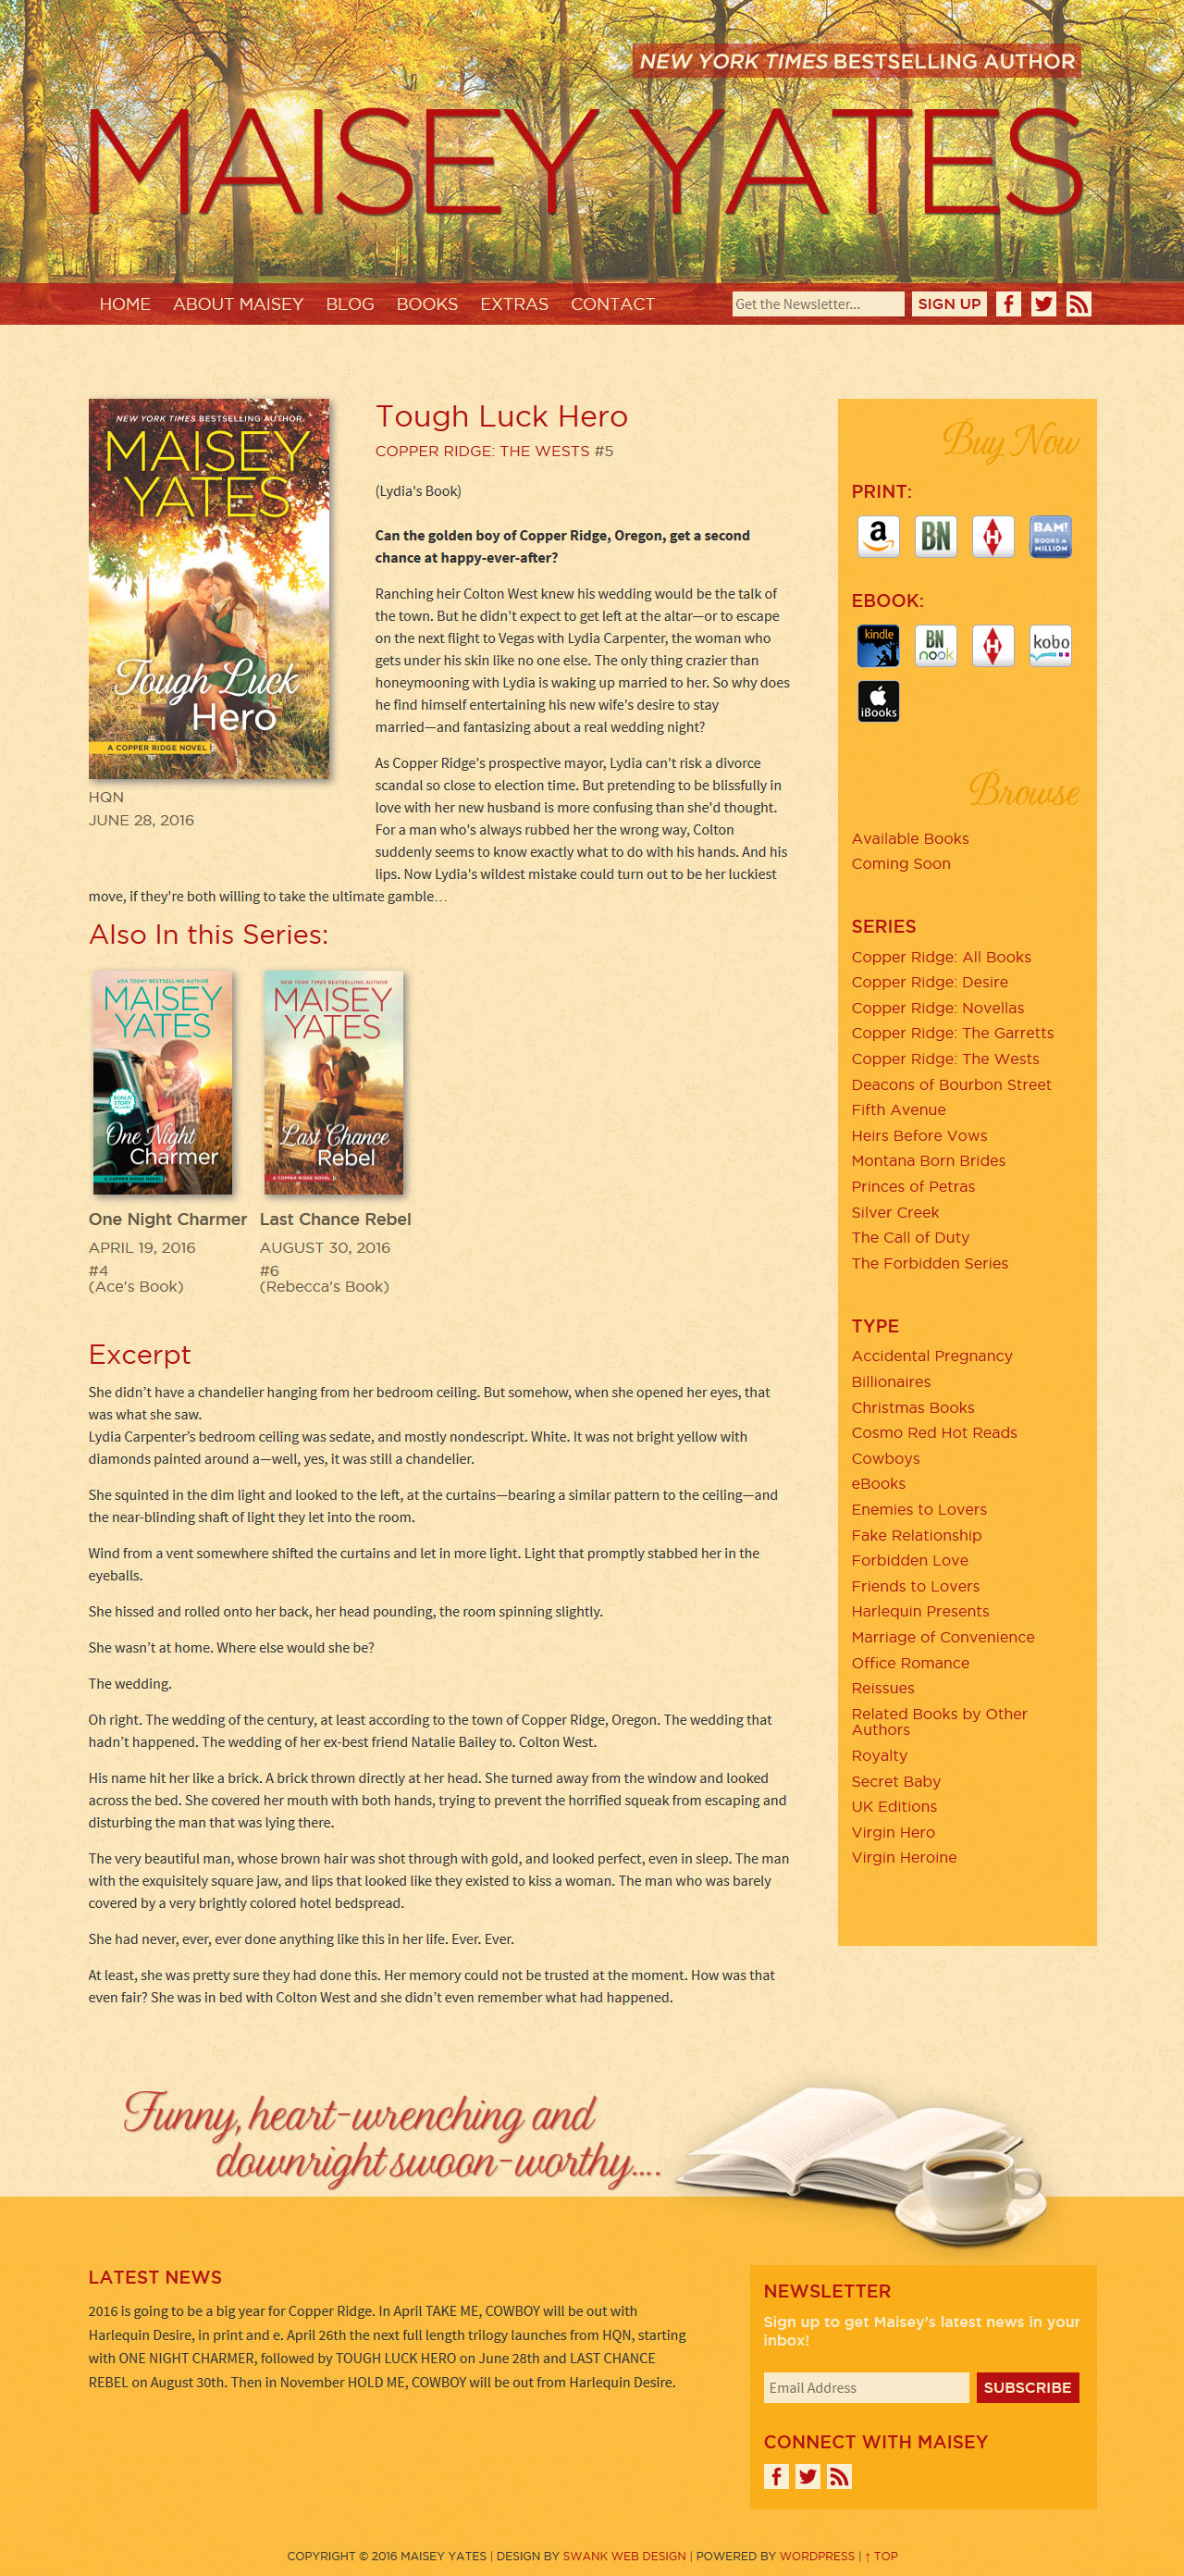 Website and Blog Design for Author Maisey Yates by Swank Web Design